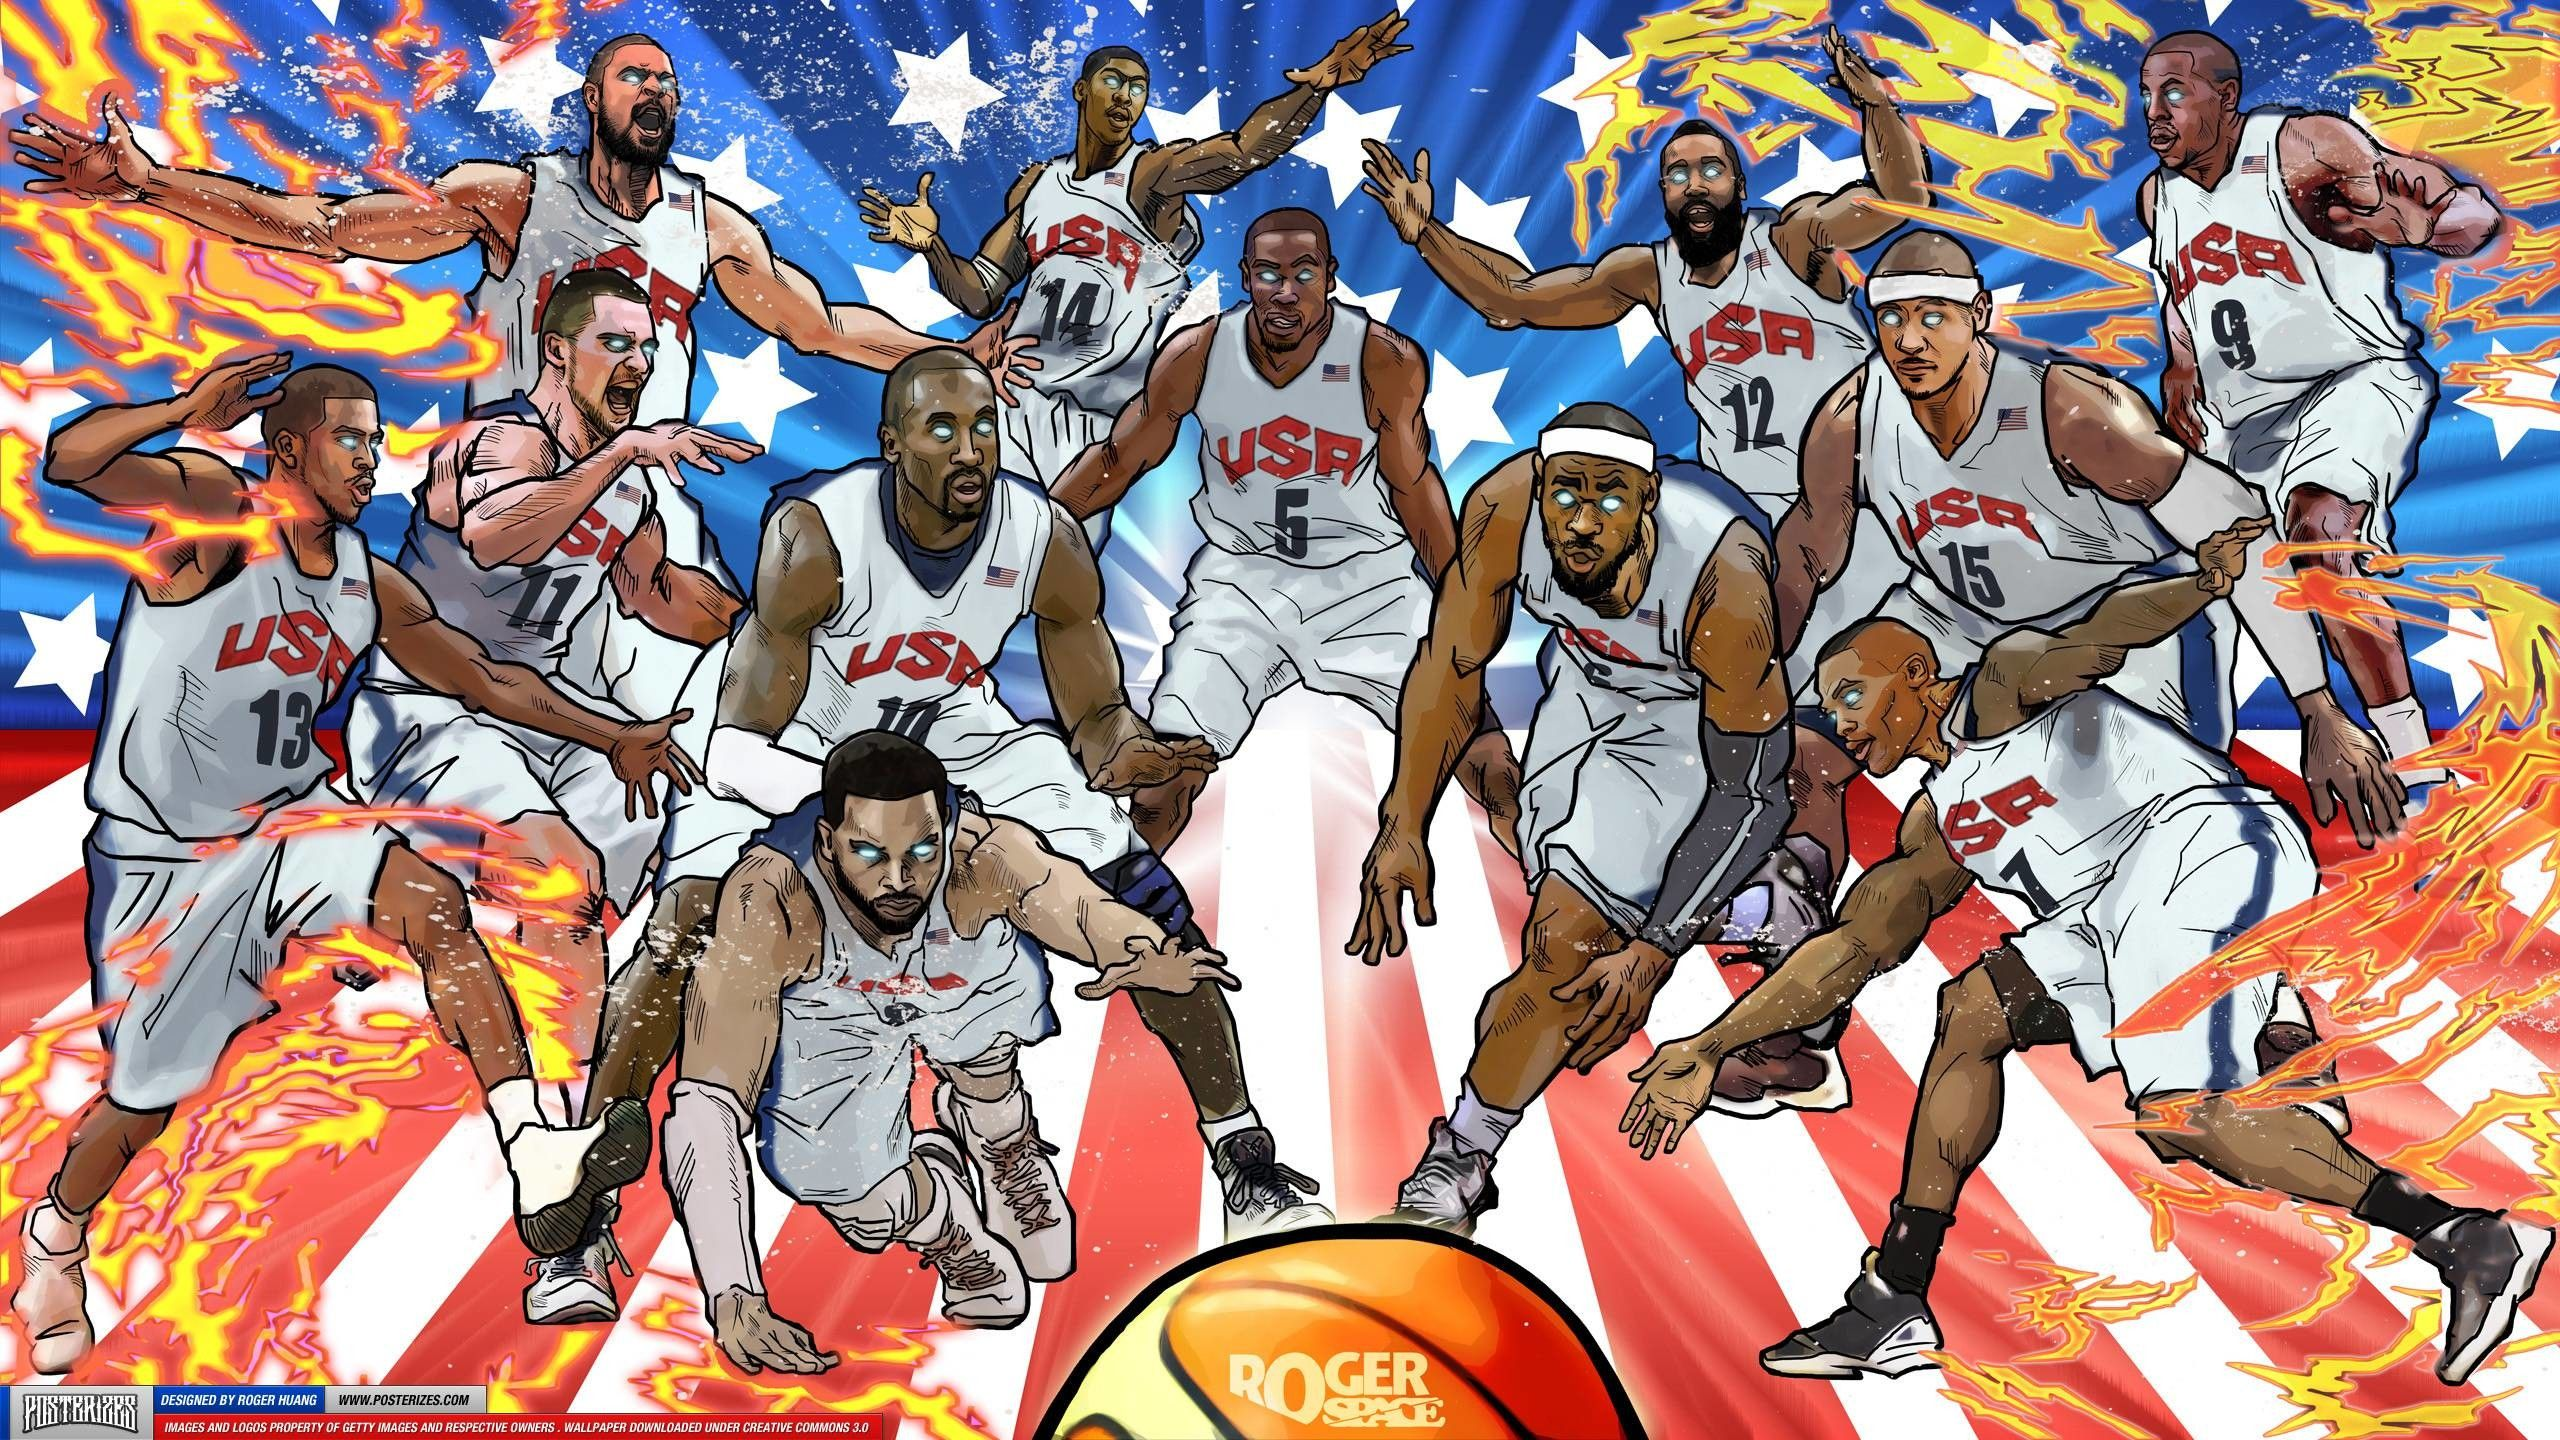 Pin By Atx Fine Arts On Deportes Nba Wallpapers Team Wallpaper Basketball Canvas